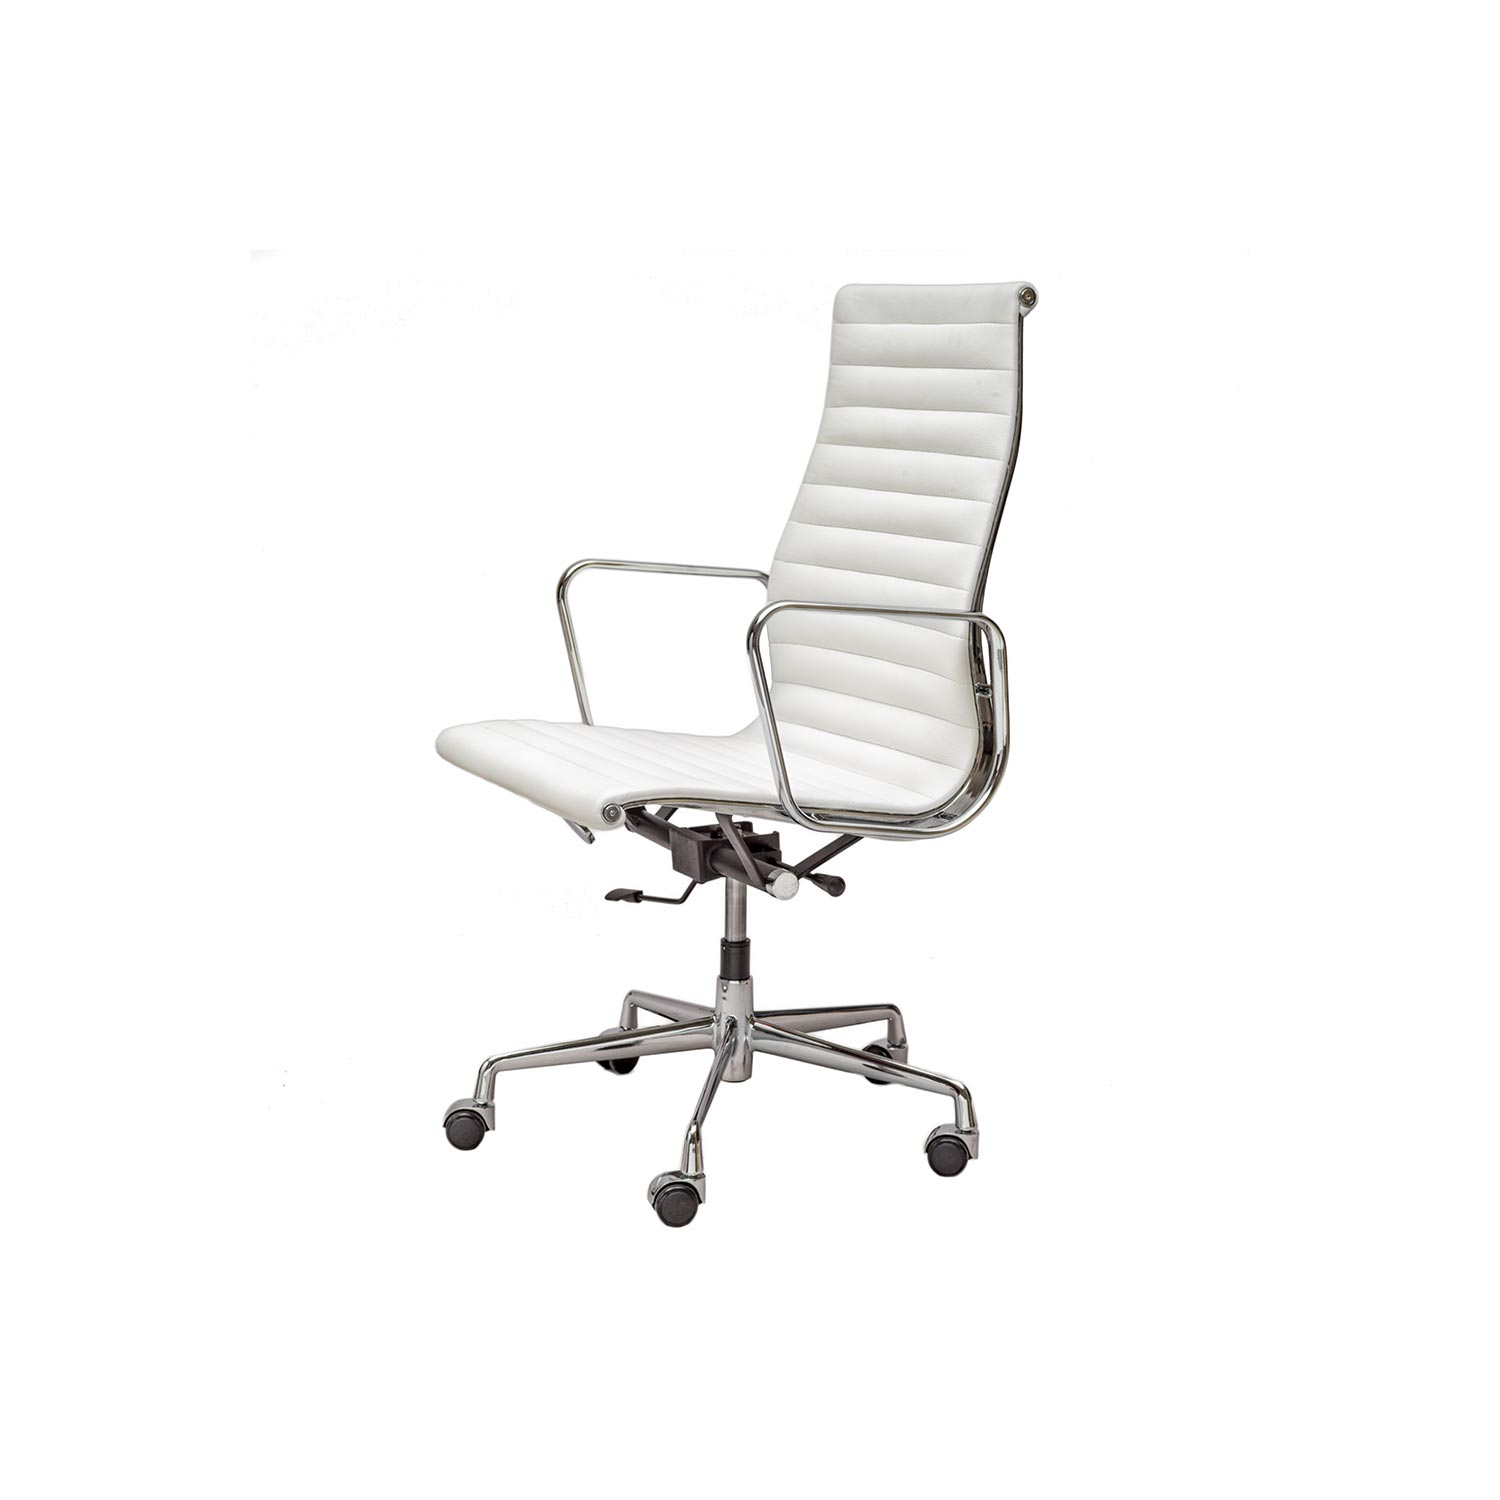 Chair Eames Aluminium Chair Ea 119 | White - Steelform | The Best Reproductions Of Modern Classic Designer Furniture